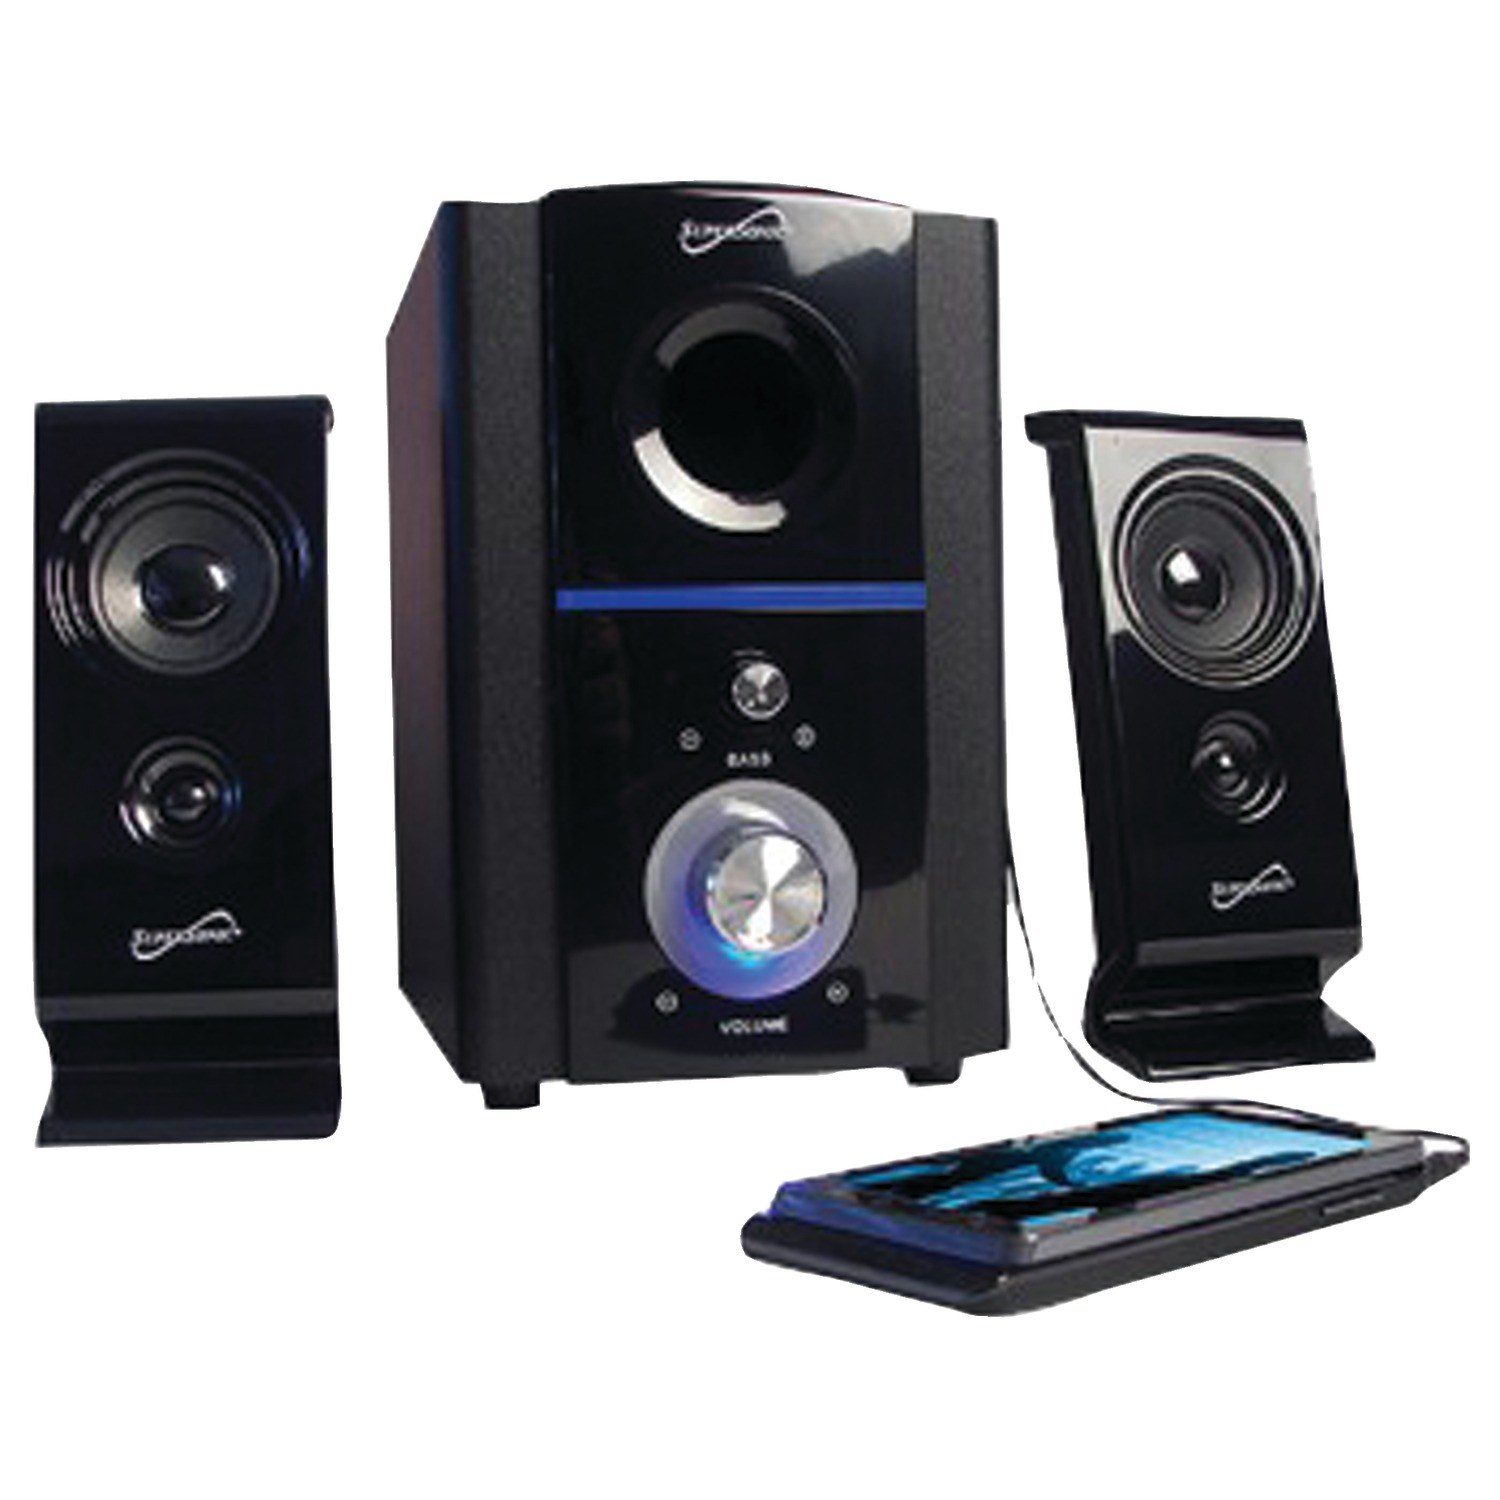 Supersonic SC-1120 2.1 Multimedia Speaker System